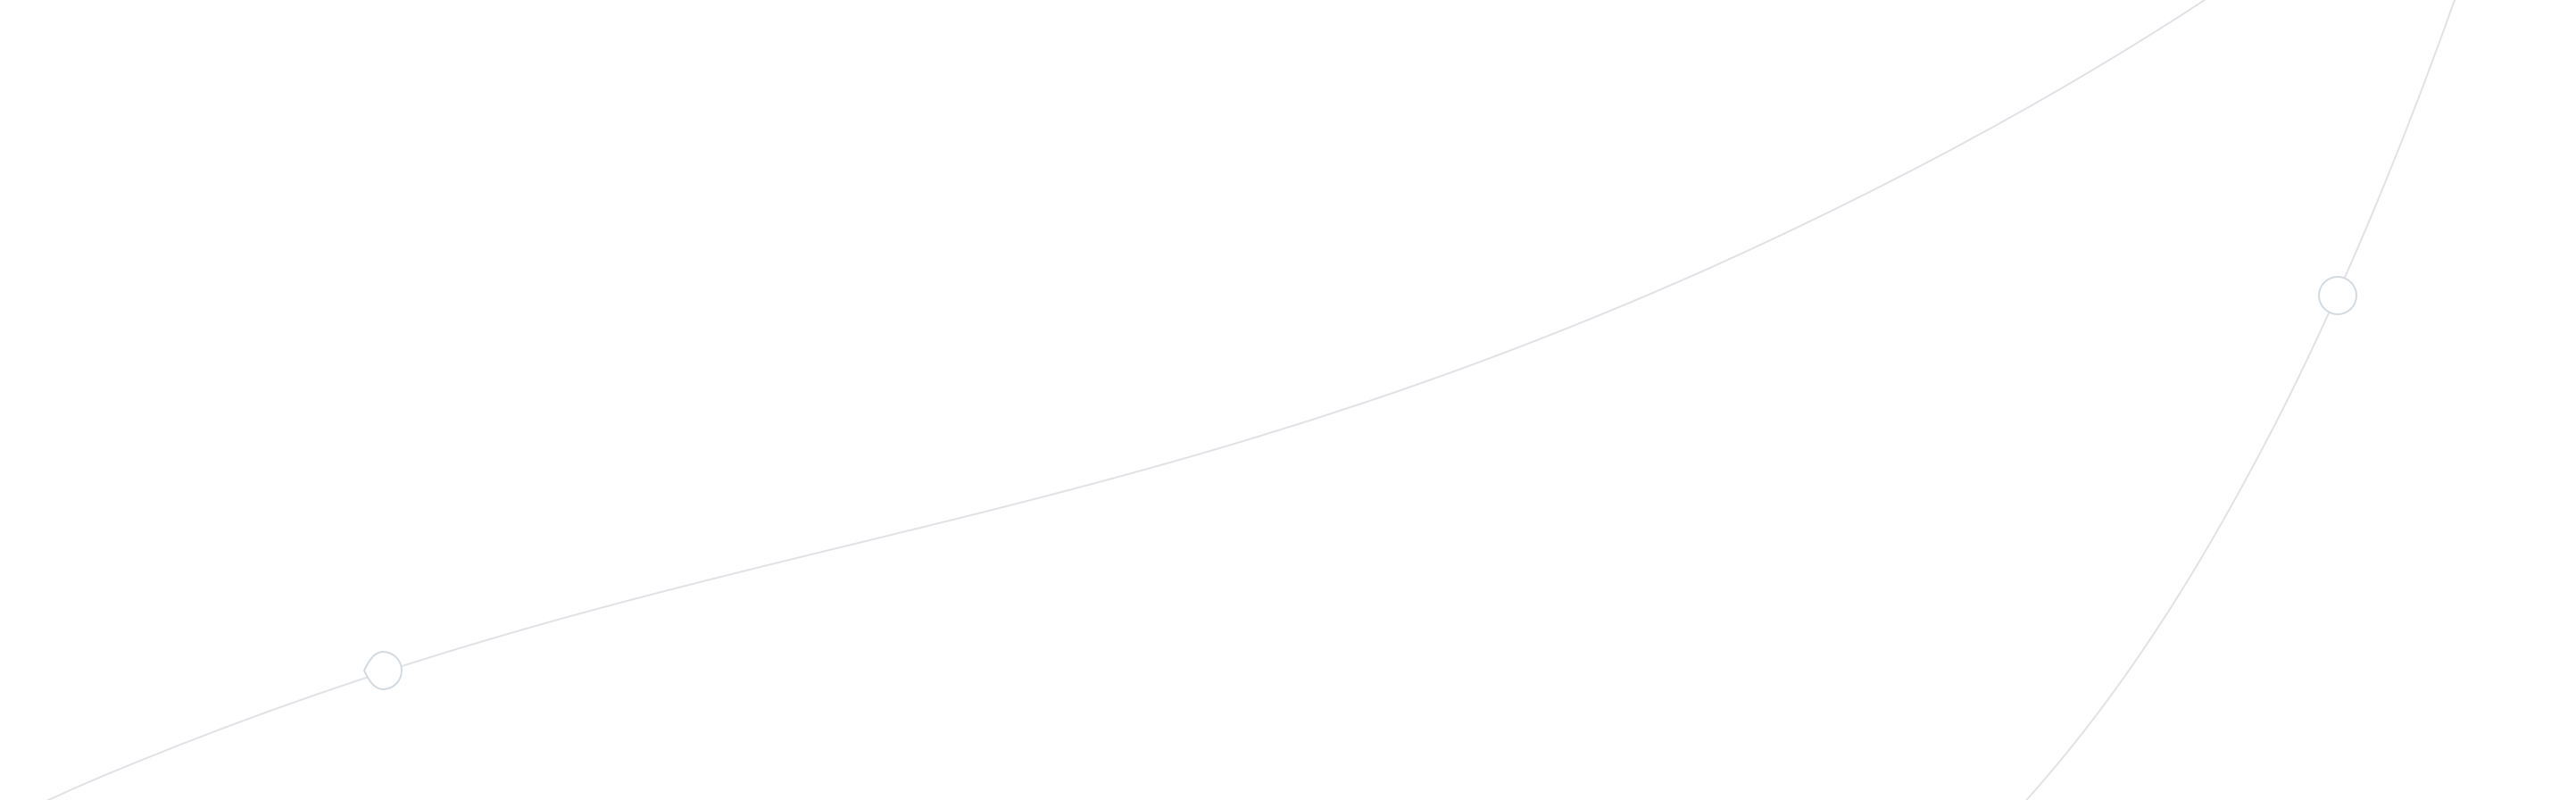 Background image of lines and dots